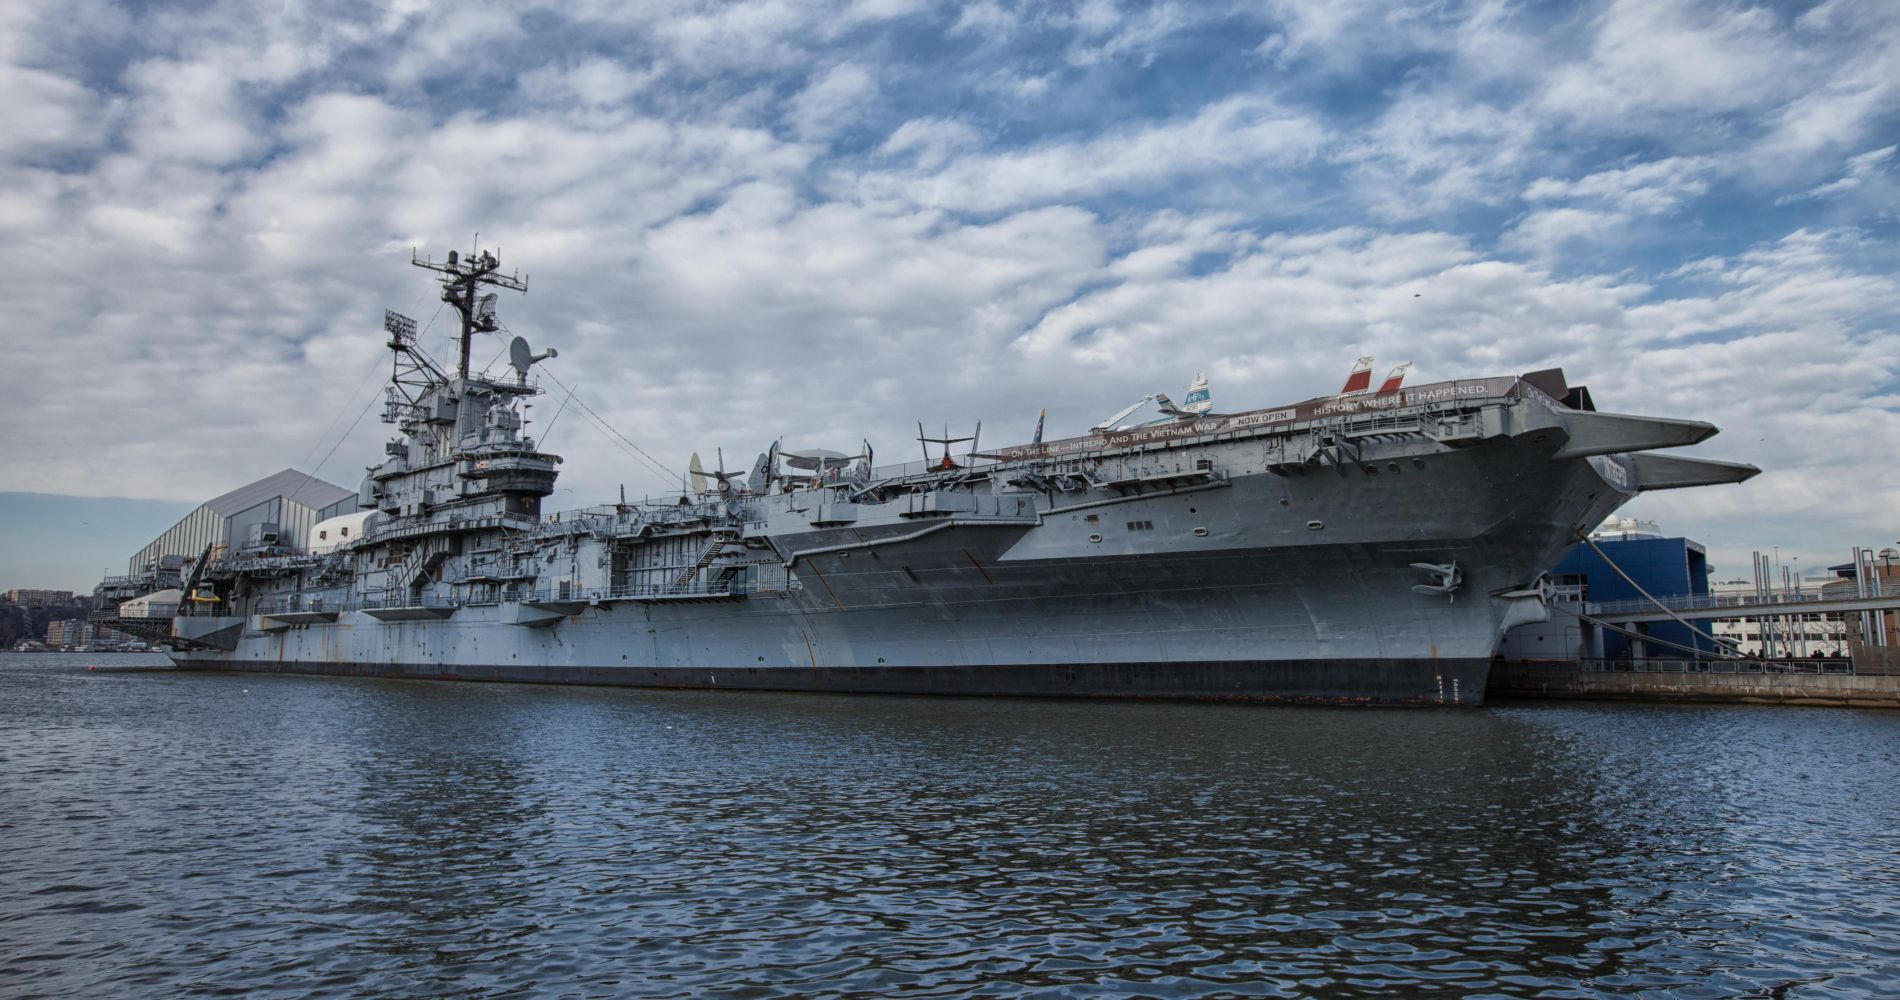 Best Museums of New York including Intrepid Sea, Air and Space Museum and Space Shuttle